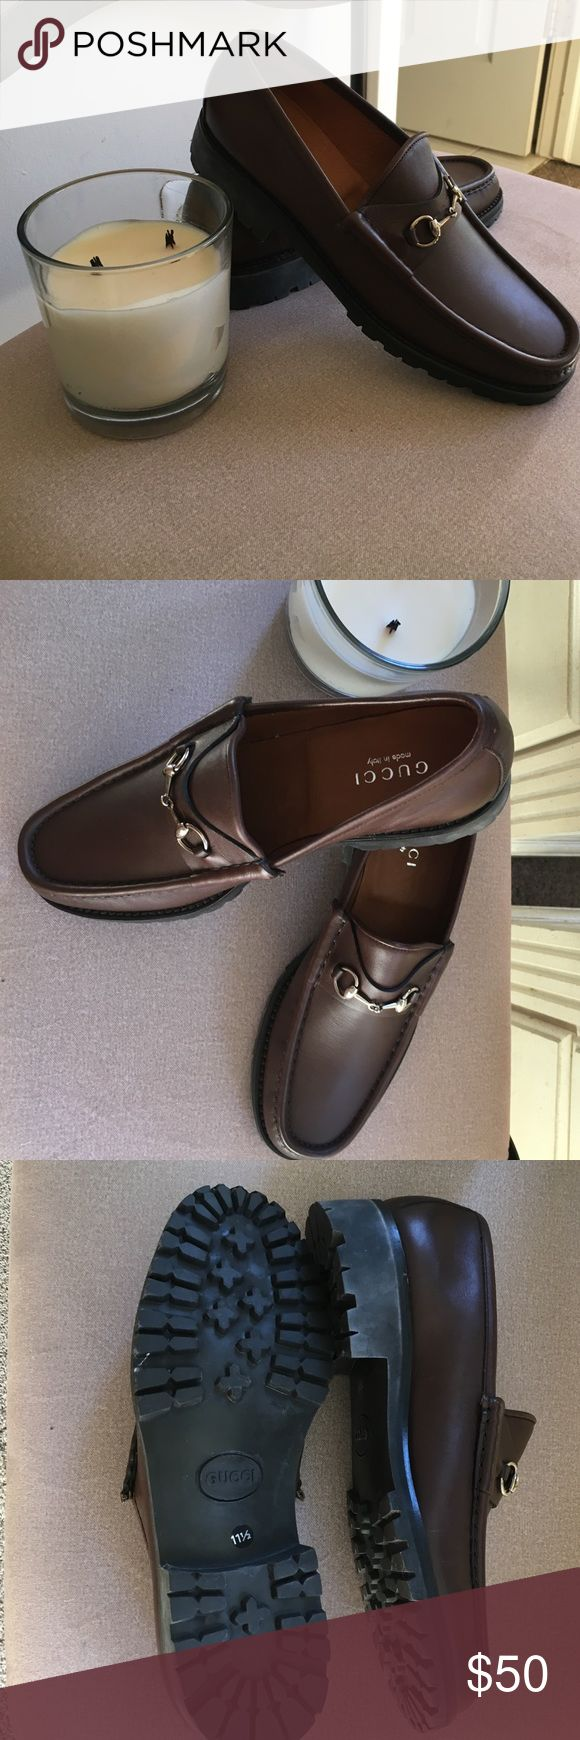 Mens Gucci Loafers (Brown) Brand new! Never been worn!  Great deal for the price! Put your man in style for a fraction of the price! Gucci Shoes Loafers & Slip-Ons